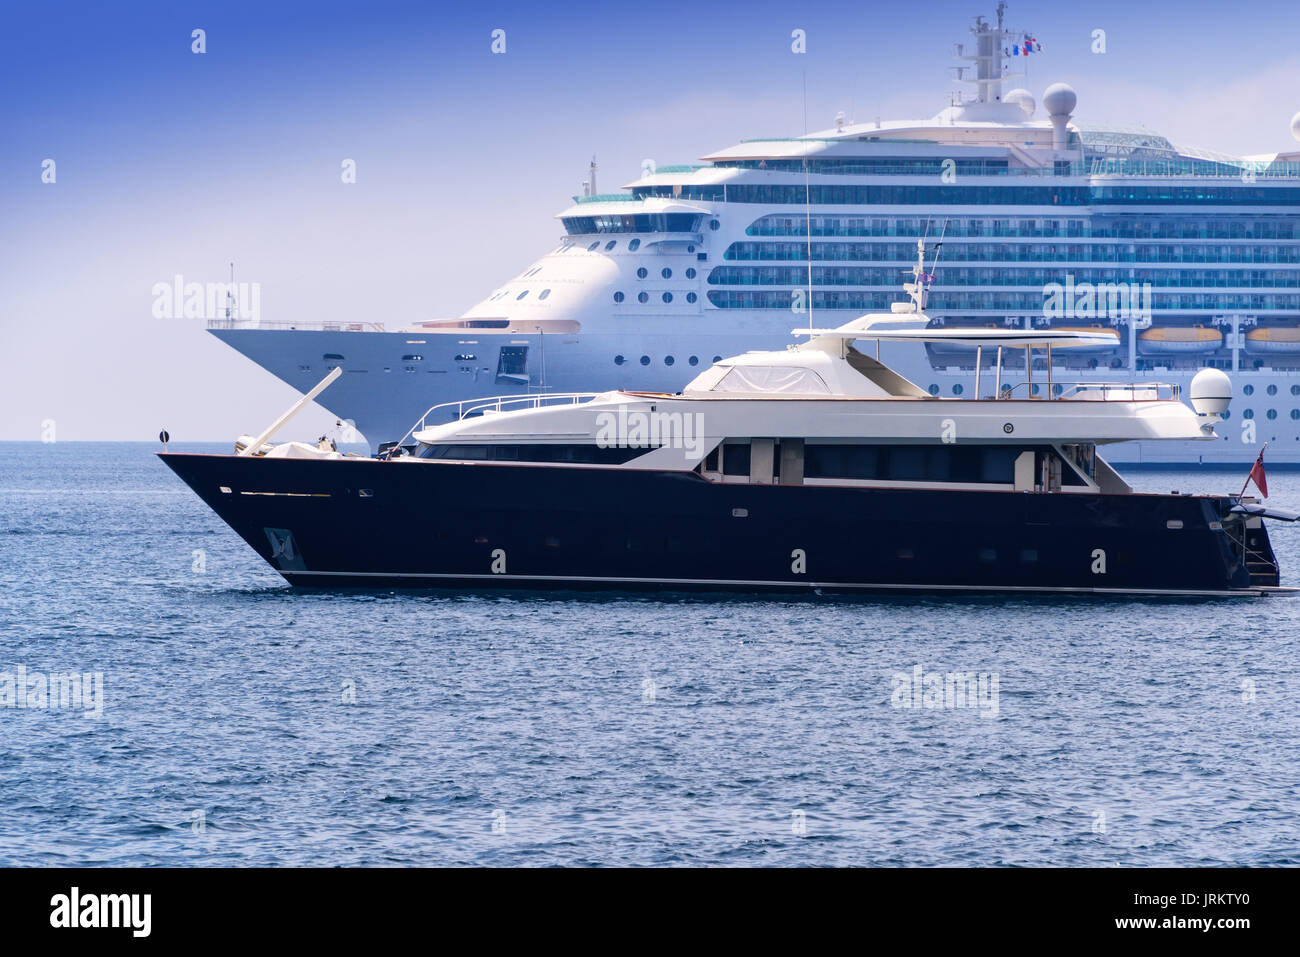 Cruise ship and yacht anchored in a harbor in Nice, France. - Stock Image